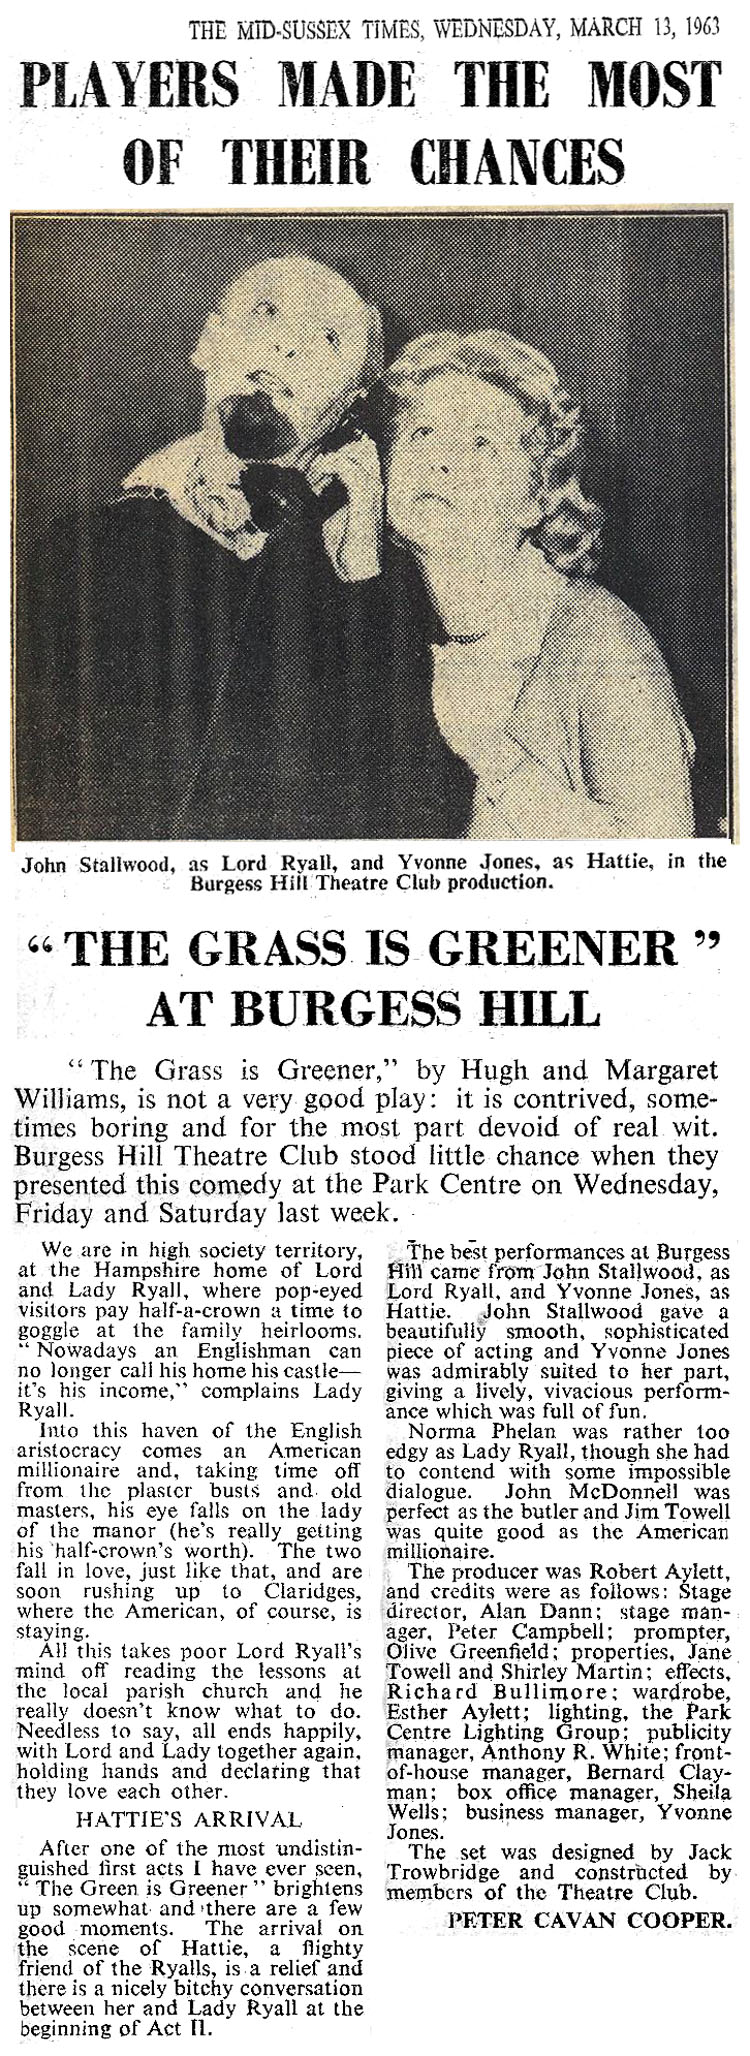 The Grass is Greener press review & photo